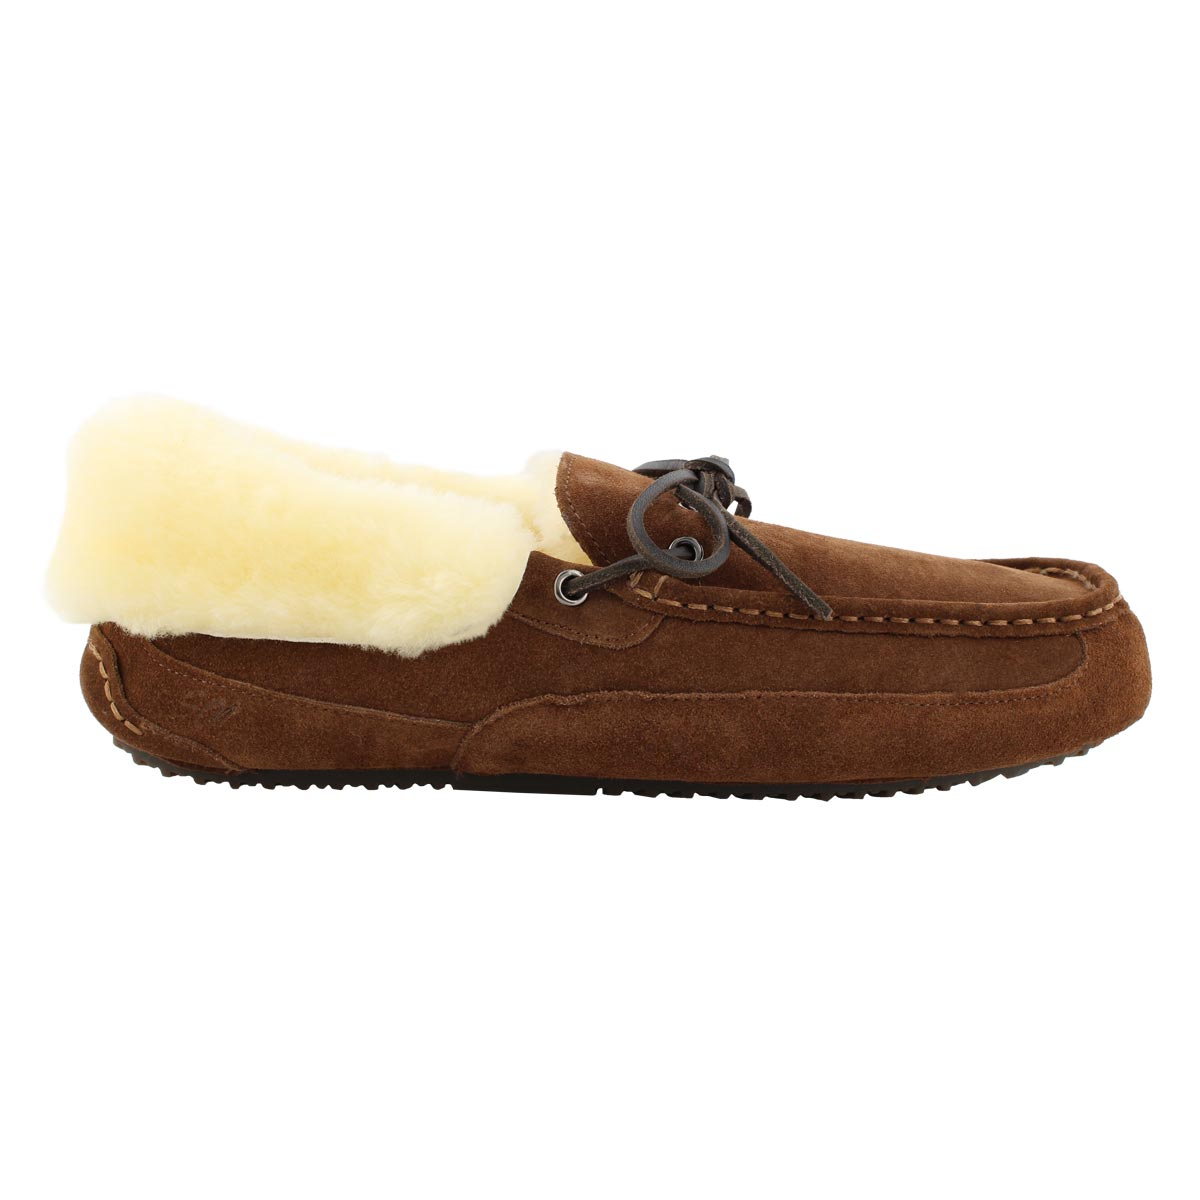 Mns Patrick II spice shearling lined moc